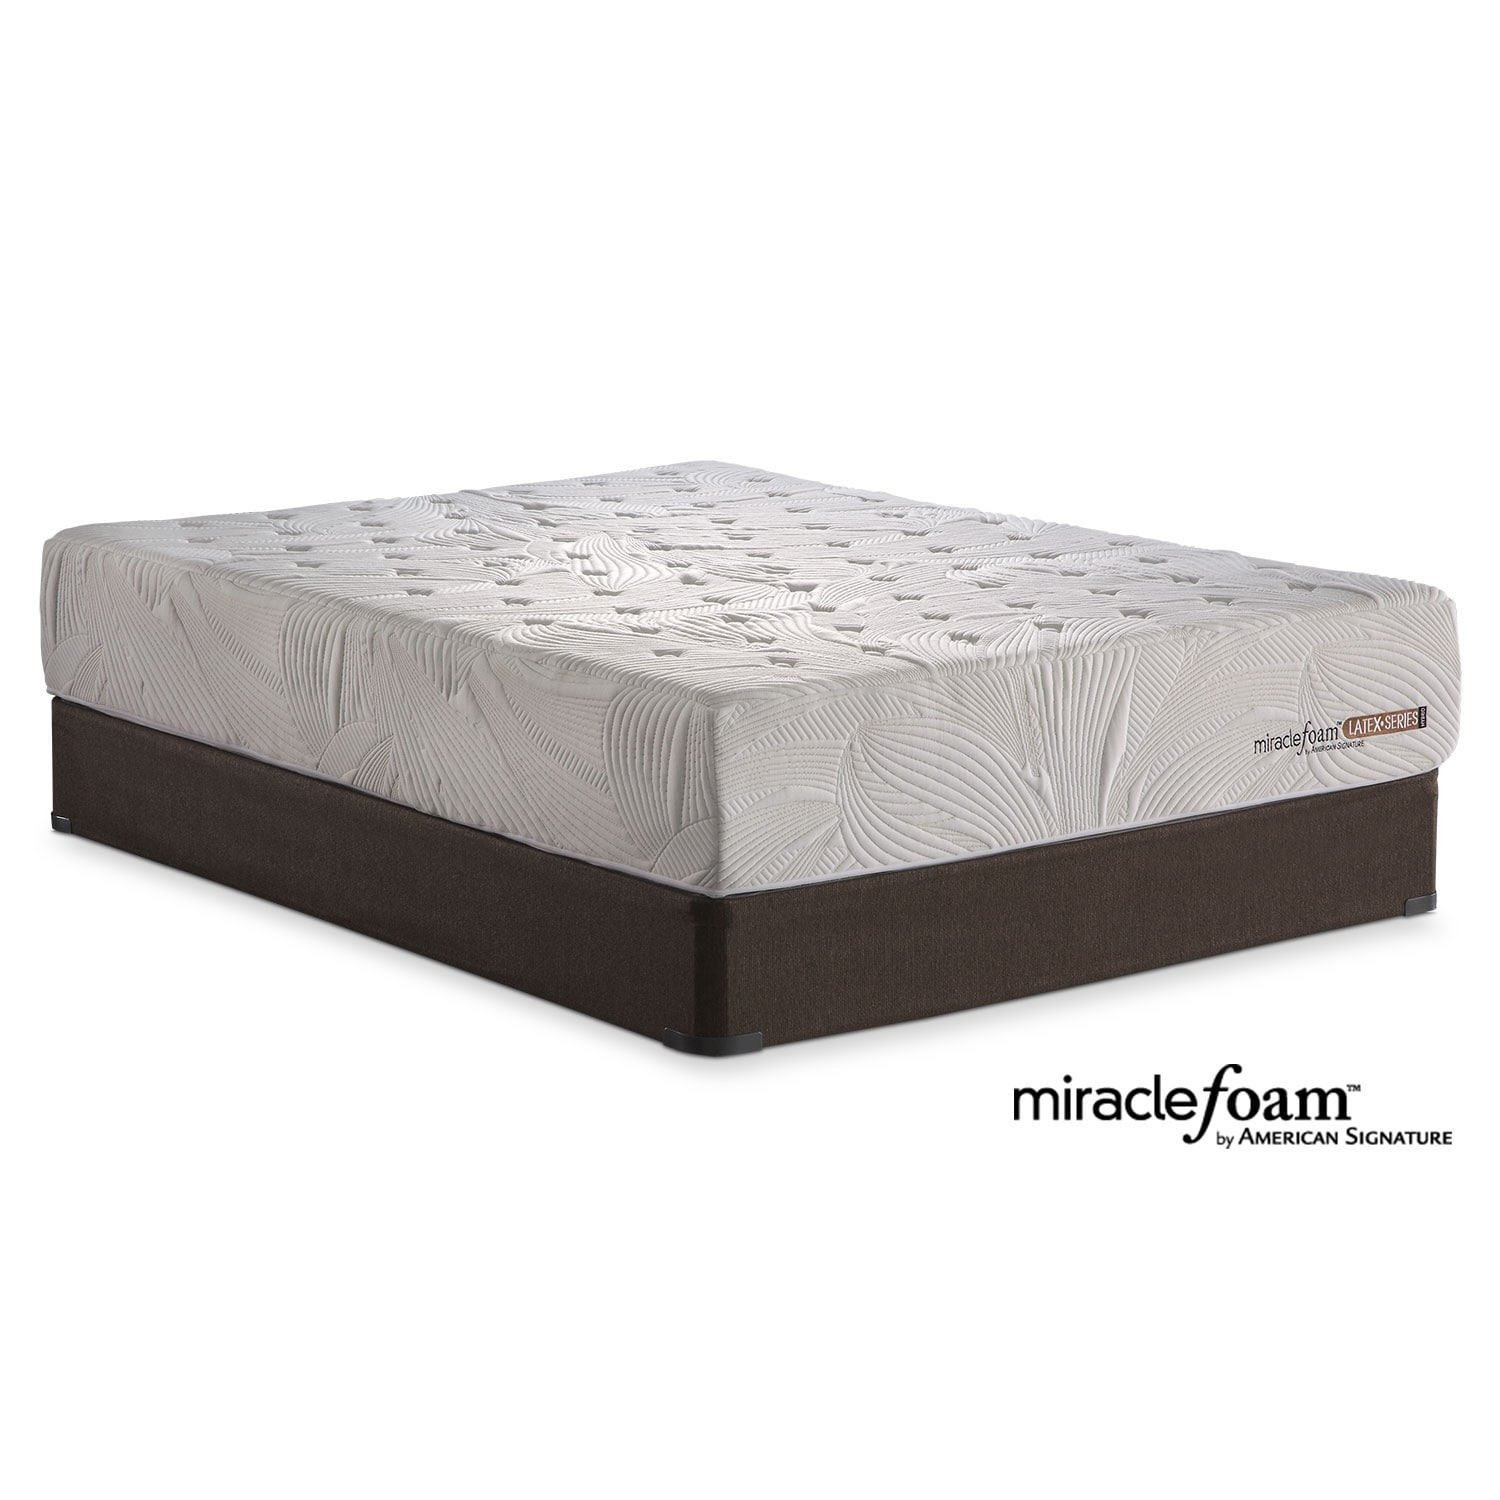 [Bliss Full Mattress/Foundation Set]